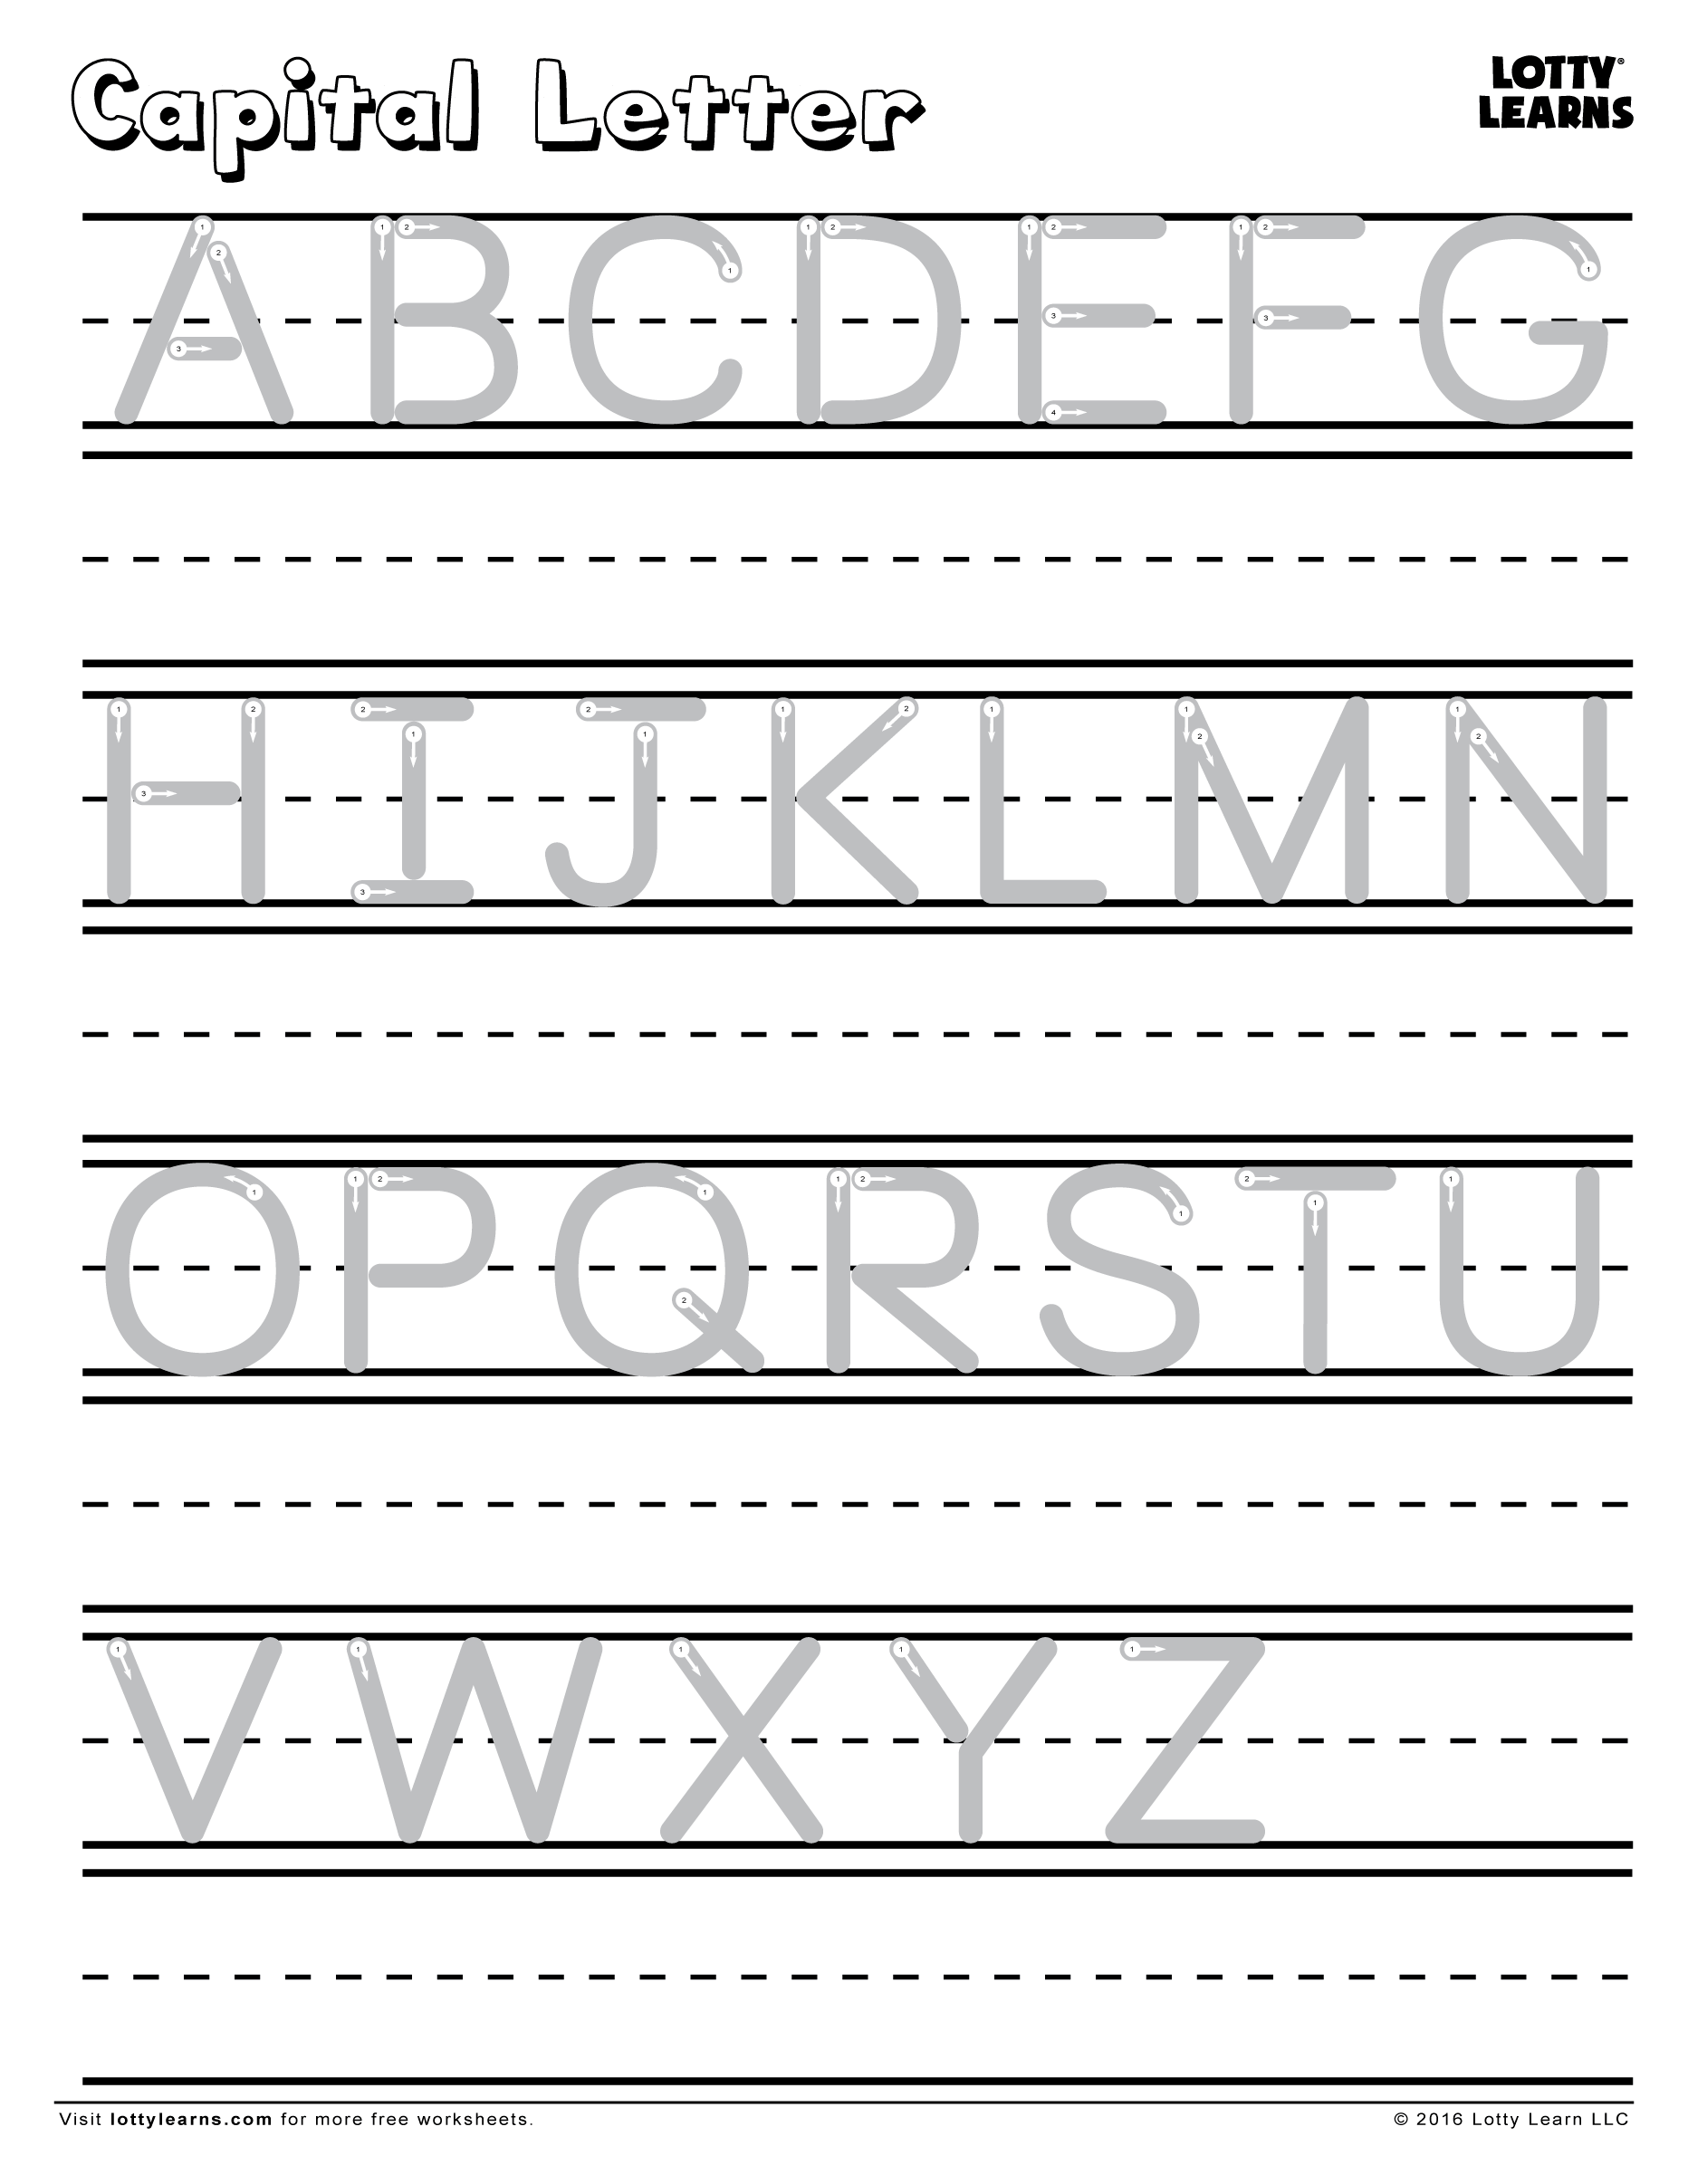 hight resolution of Capital Letter A-Z   Lotty Learns   Capital letters worksheet